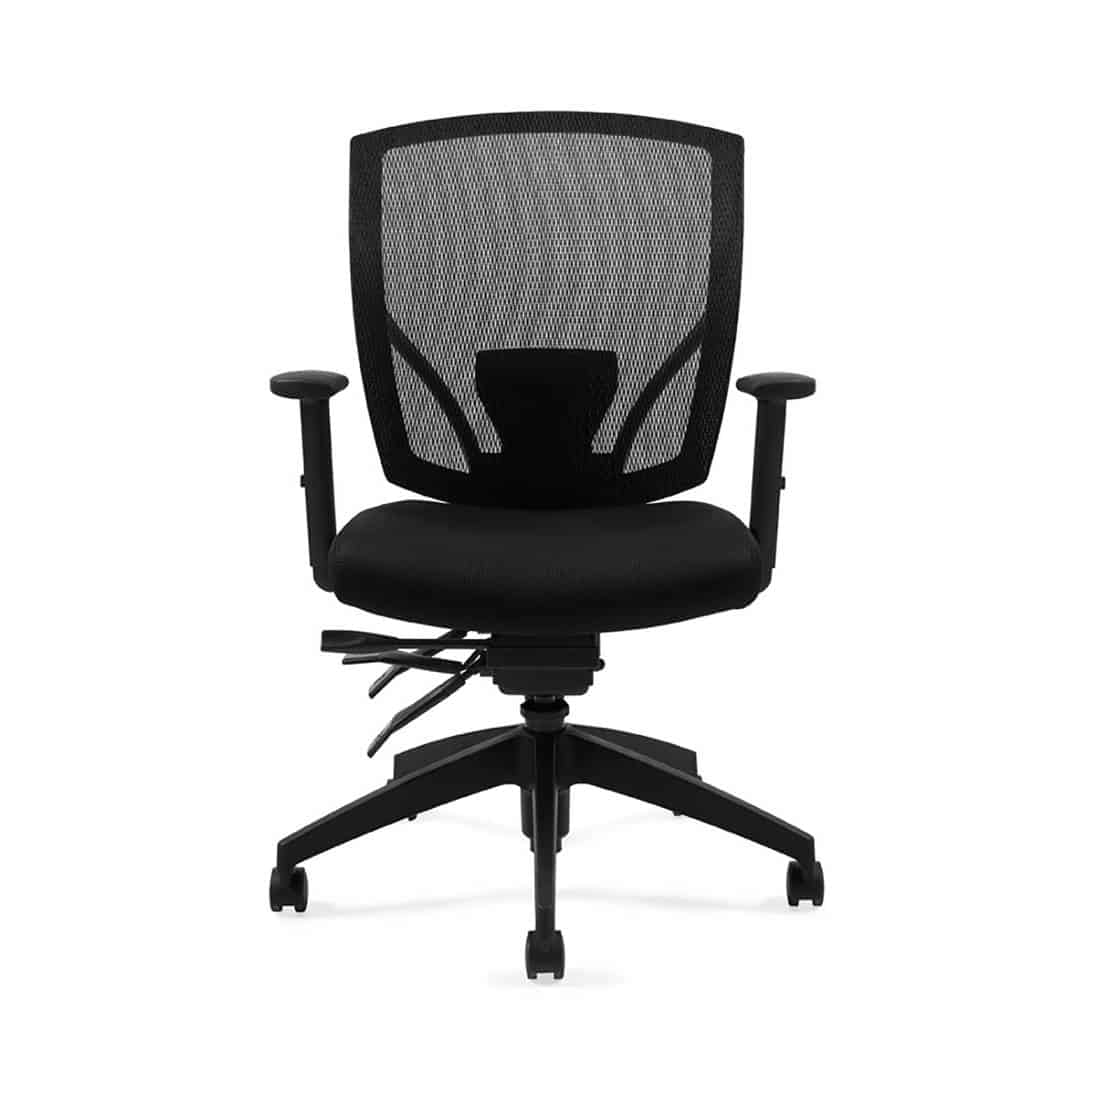 Global OTG 2803 Mesh Executive Chair with Adjustable Arms Infinite seat lock with tilt tension adjustment